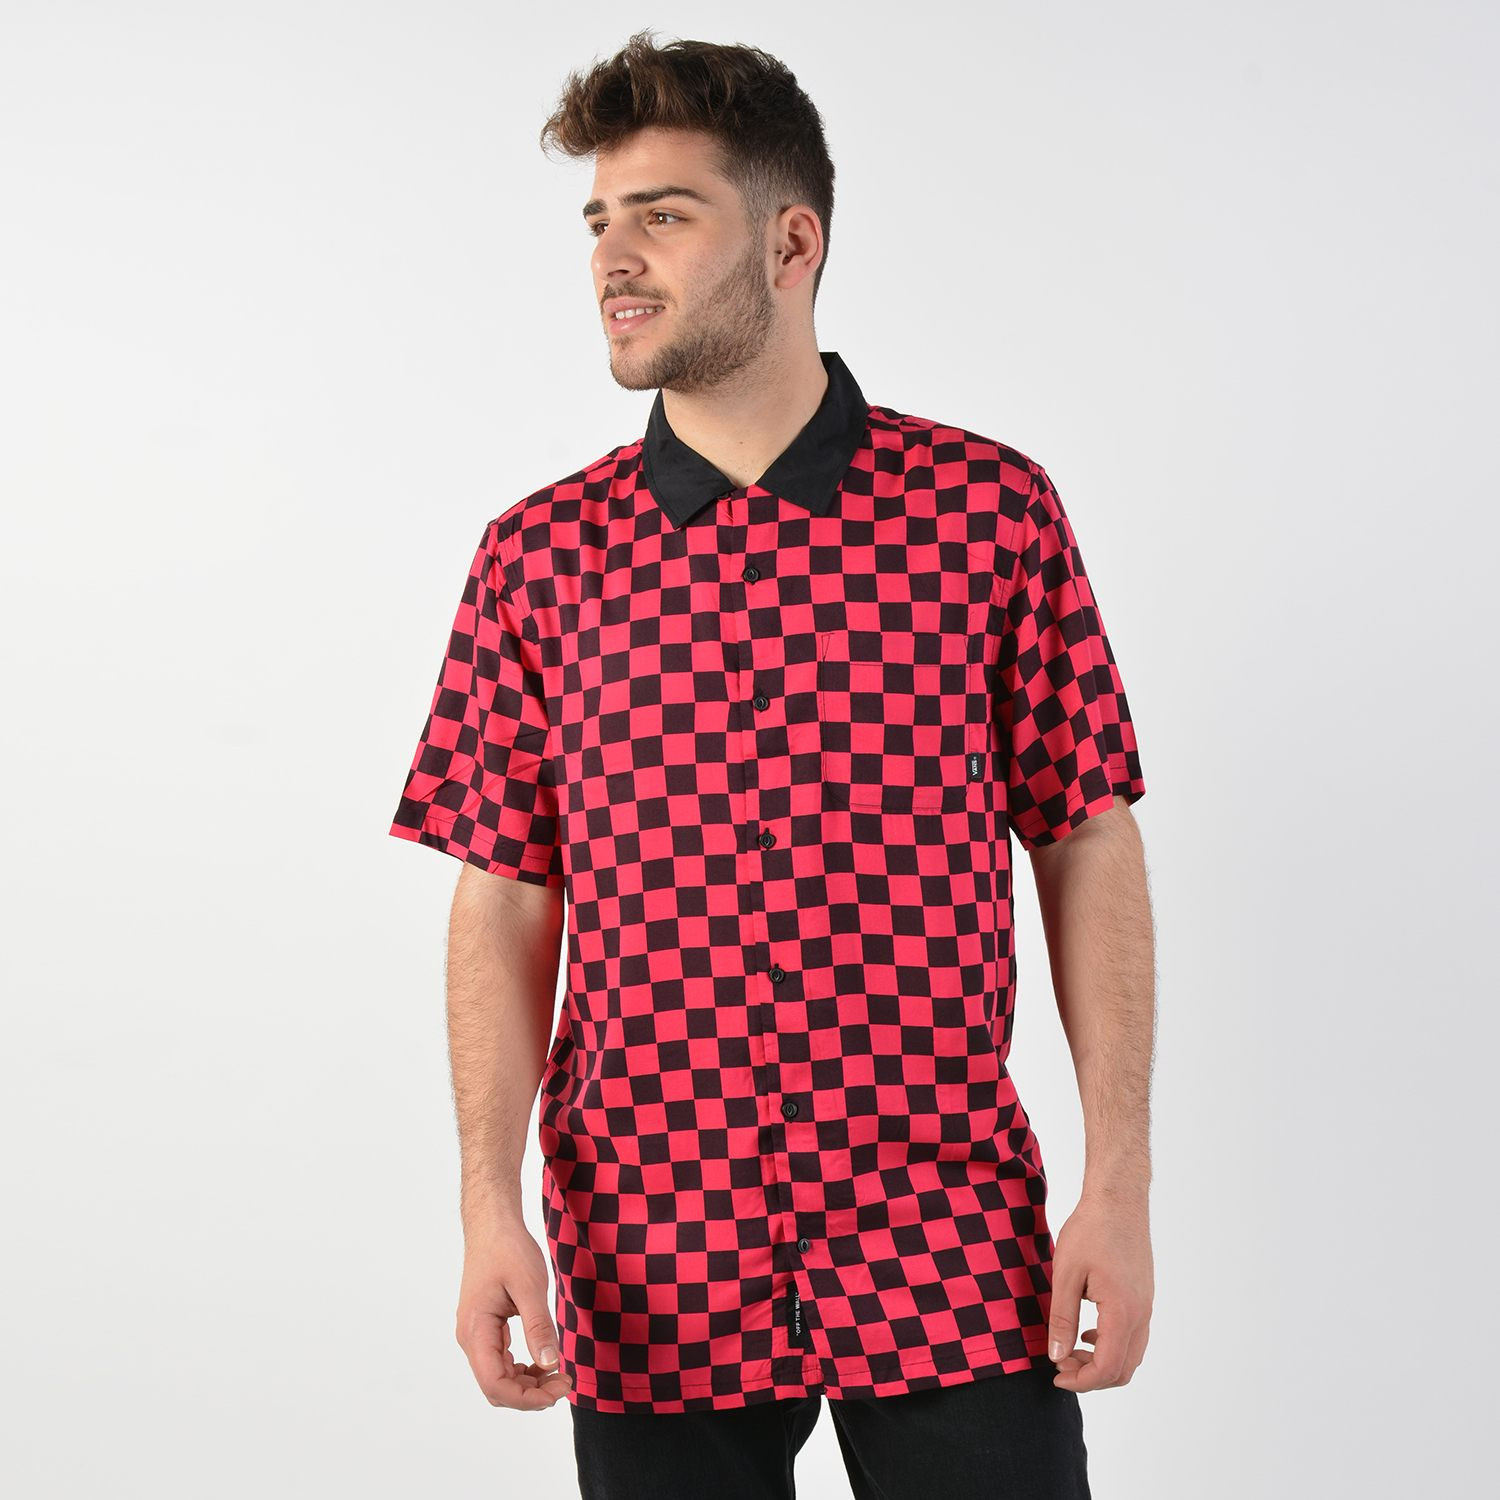 Vans Men's Checkeboard Short Sleeve Buttondown Shirt (9000026965_38215)